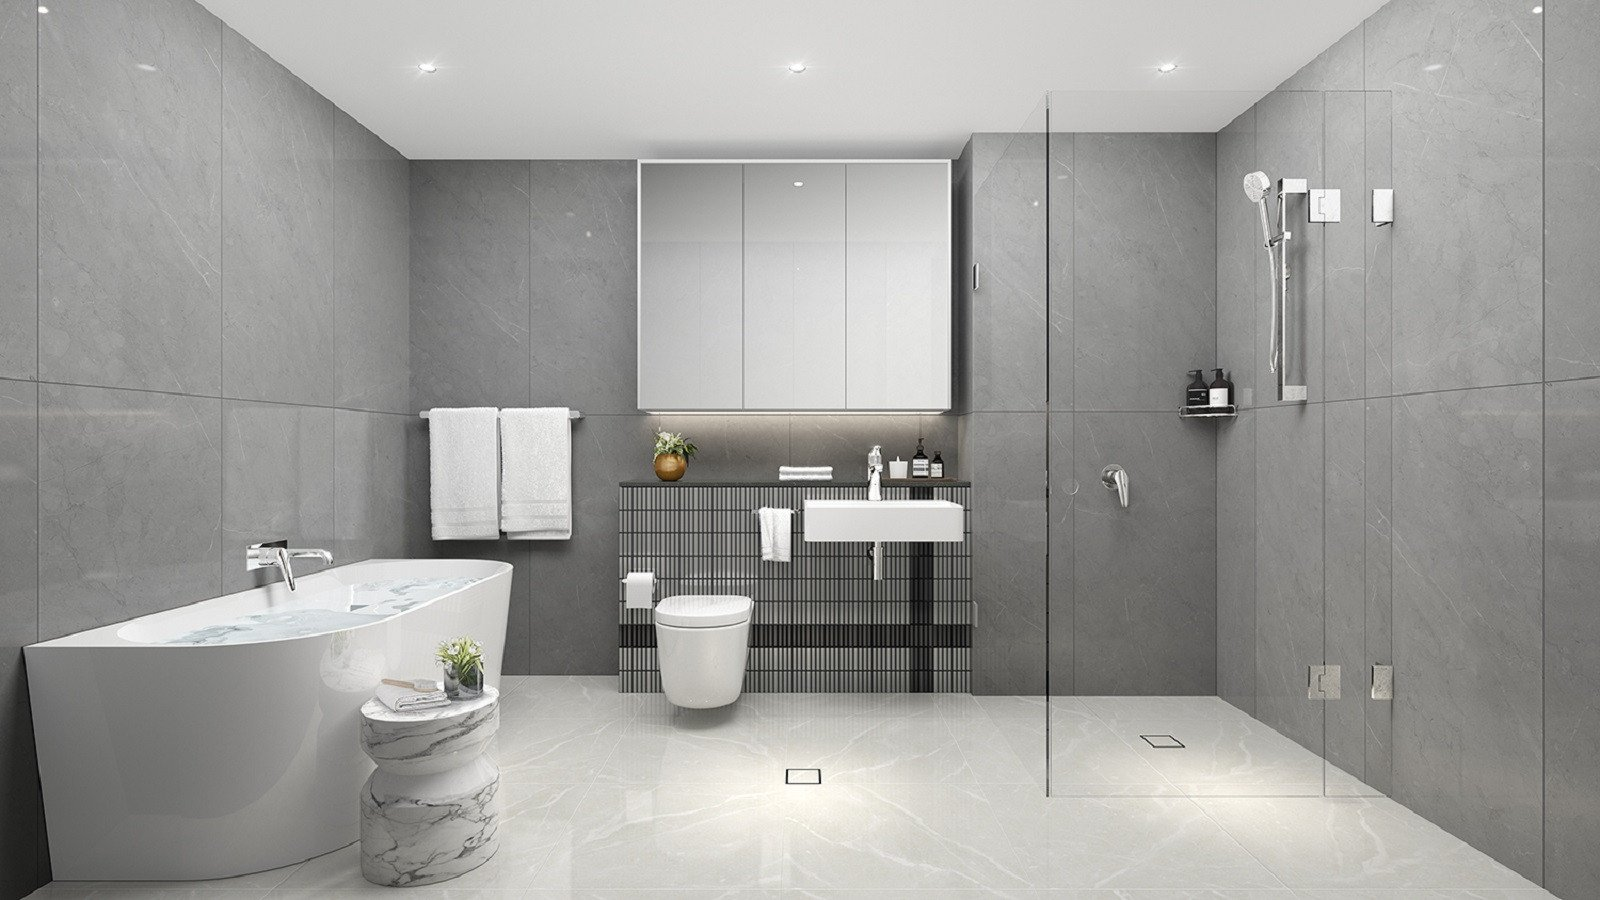 Zetland Apartments-image-1